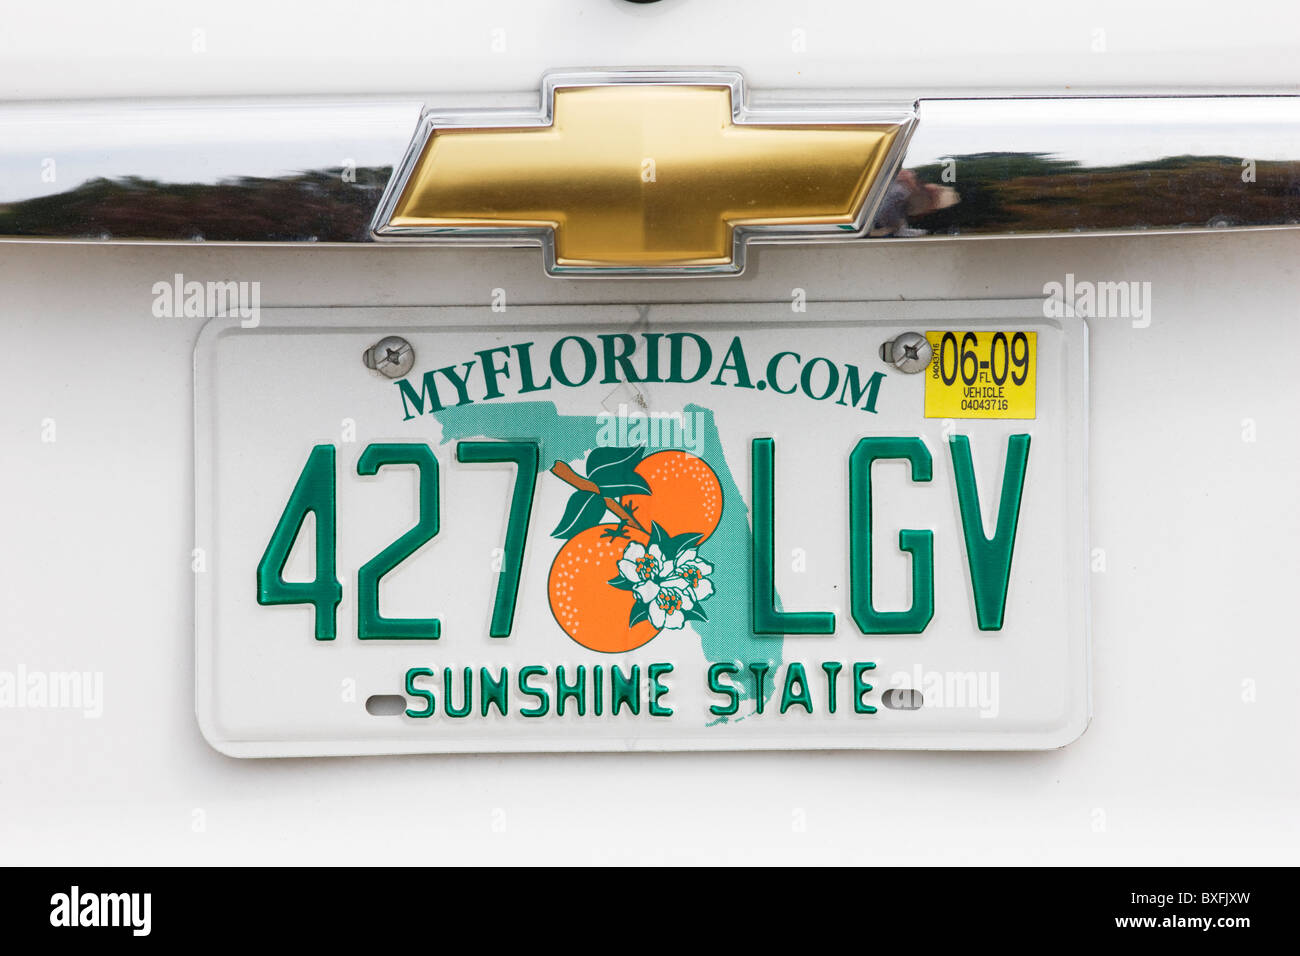 Vehicle registration plate on vehicle in Anna Maria Island, United States of America - Stock Image